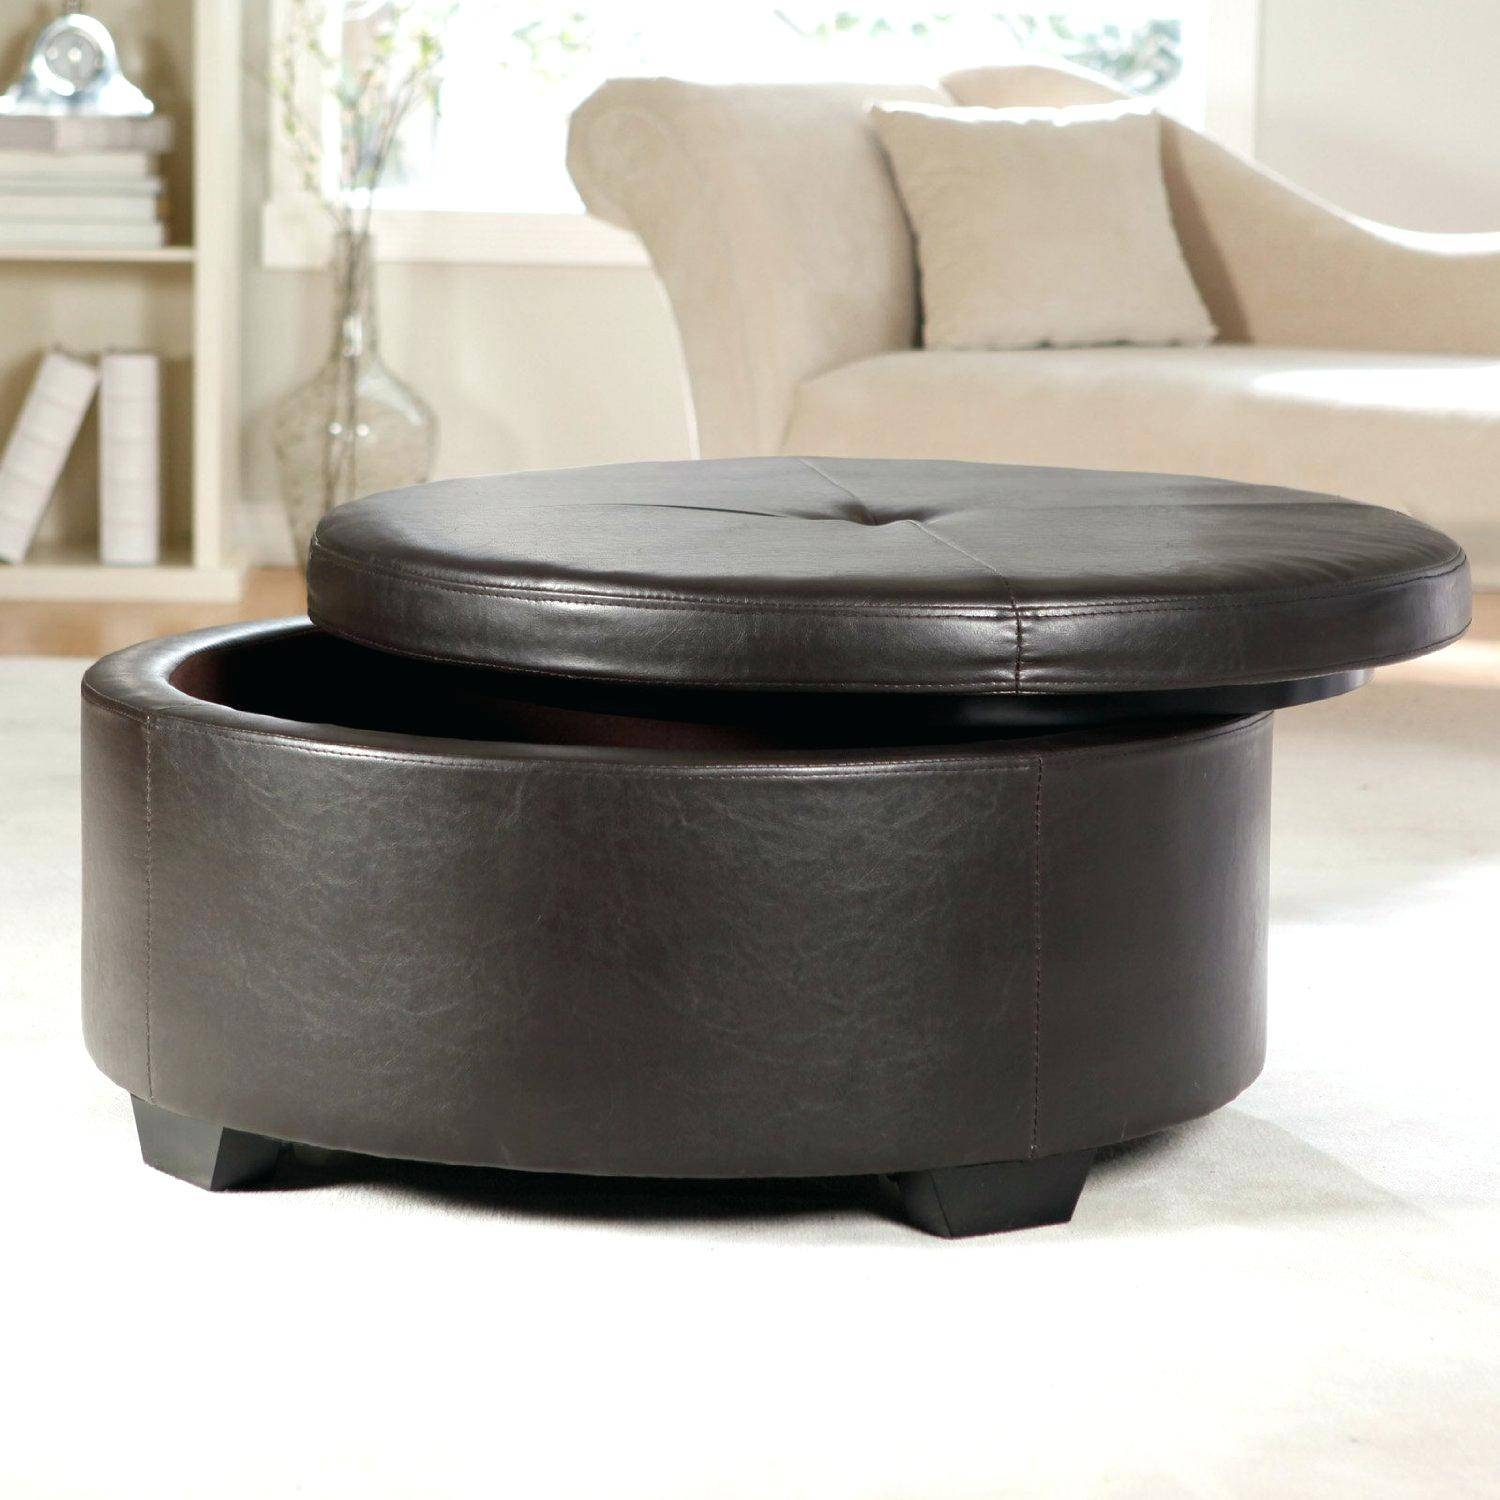 Coffee Table Walmart Round Side Tableikea Glass Top With Storage throughout Round Coffee Table Storages (Image 4 of 30)